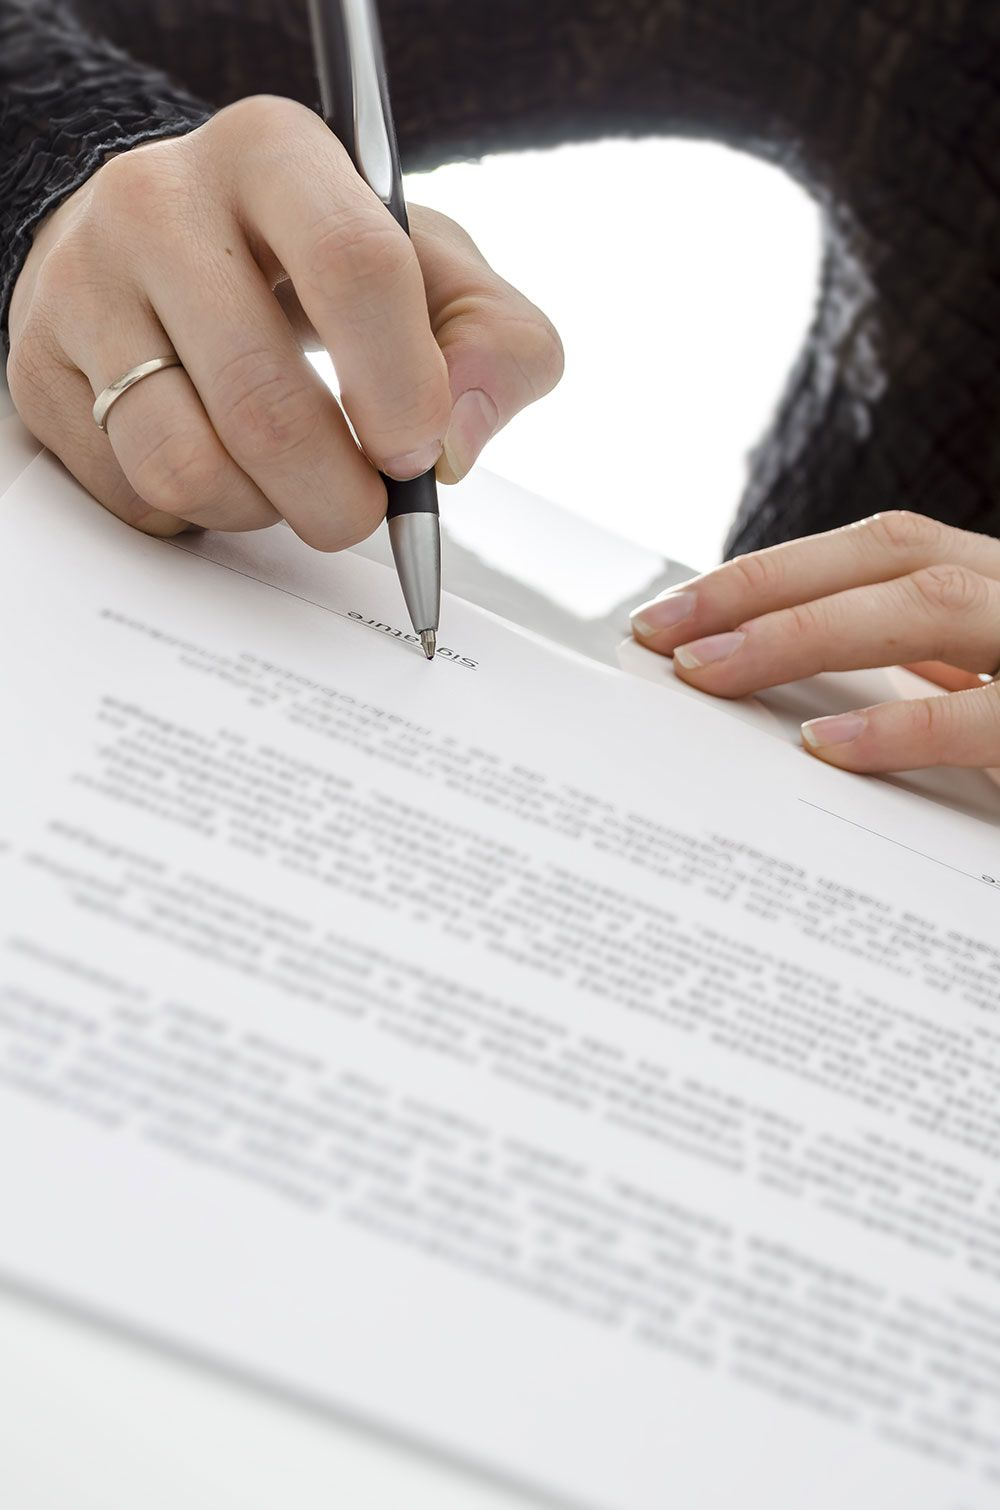 Seo Contract Template A Verbal Contract IsnT Worth The Paper